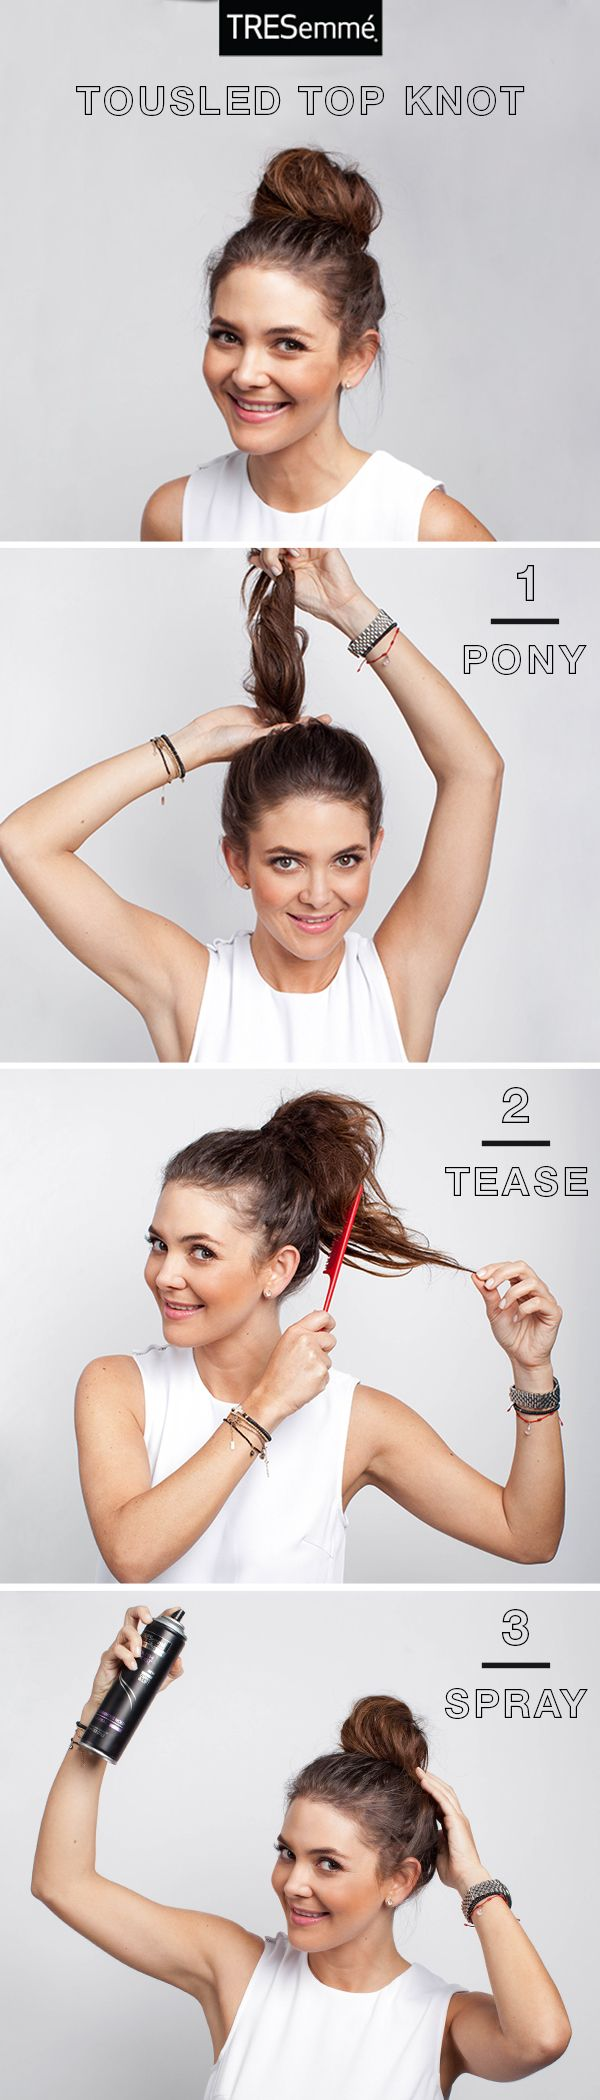 Perfectly imperfect, it doesn't get easier than a tousled top knot. Throw your hair up in a style that was made for 2nd day hair. Adriana of El Diario de la Moda shows us how: 1. Refresh Hair with TRES Fresh Start Dry Shampoo and pull hair back into a high ponytail.  2. Tease your ponytail with a fine-tooth comb to add texture and volume. 3. Wrap your ponytail around the hair tie and pin into a bun. Finish with TRES Youth Boost Hairspray for a light hold and protection from humidity.